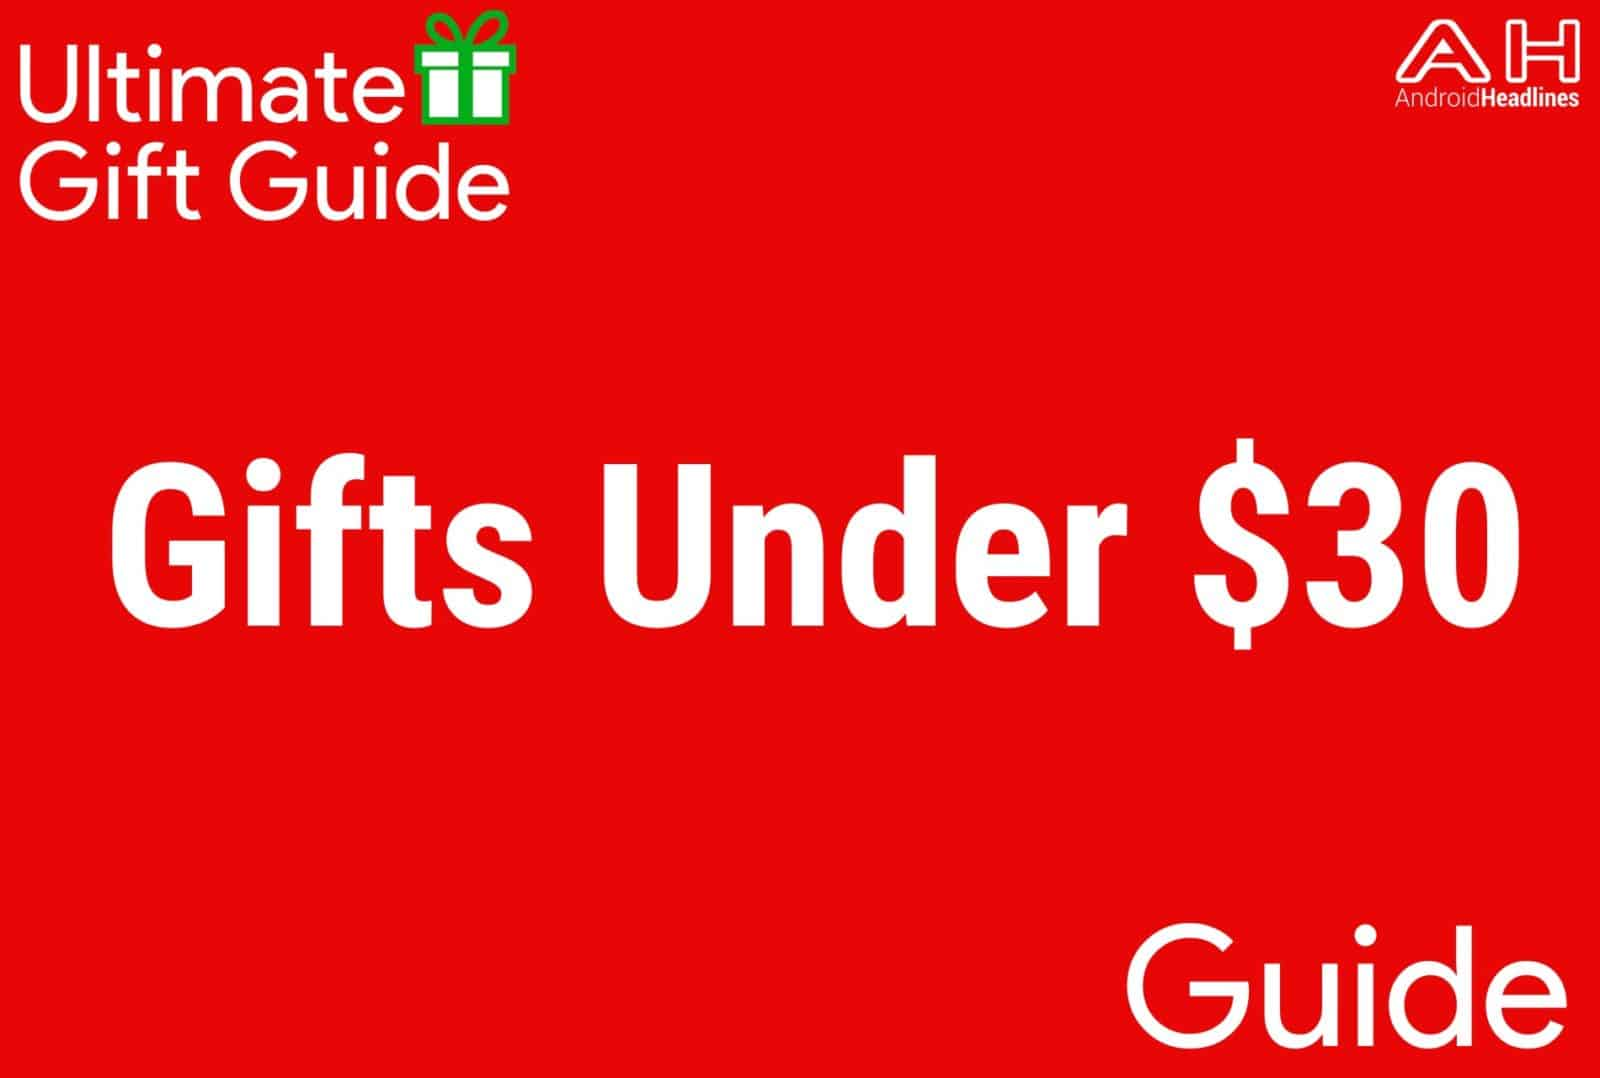 Gifts Under $30 - Gift Guide 2015